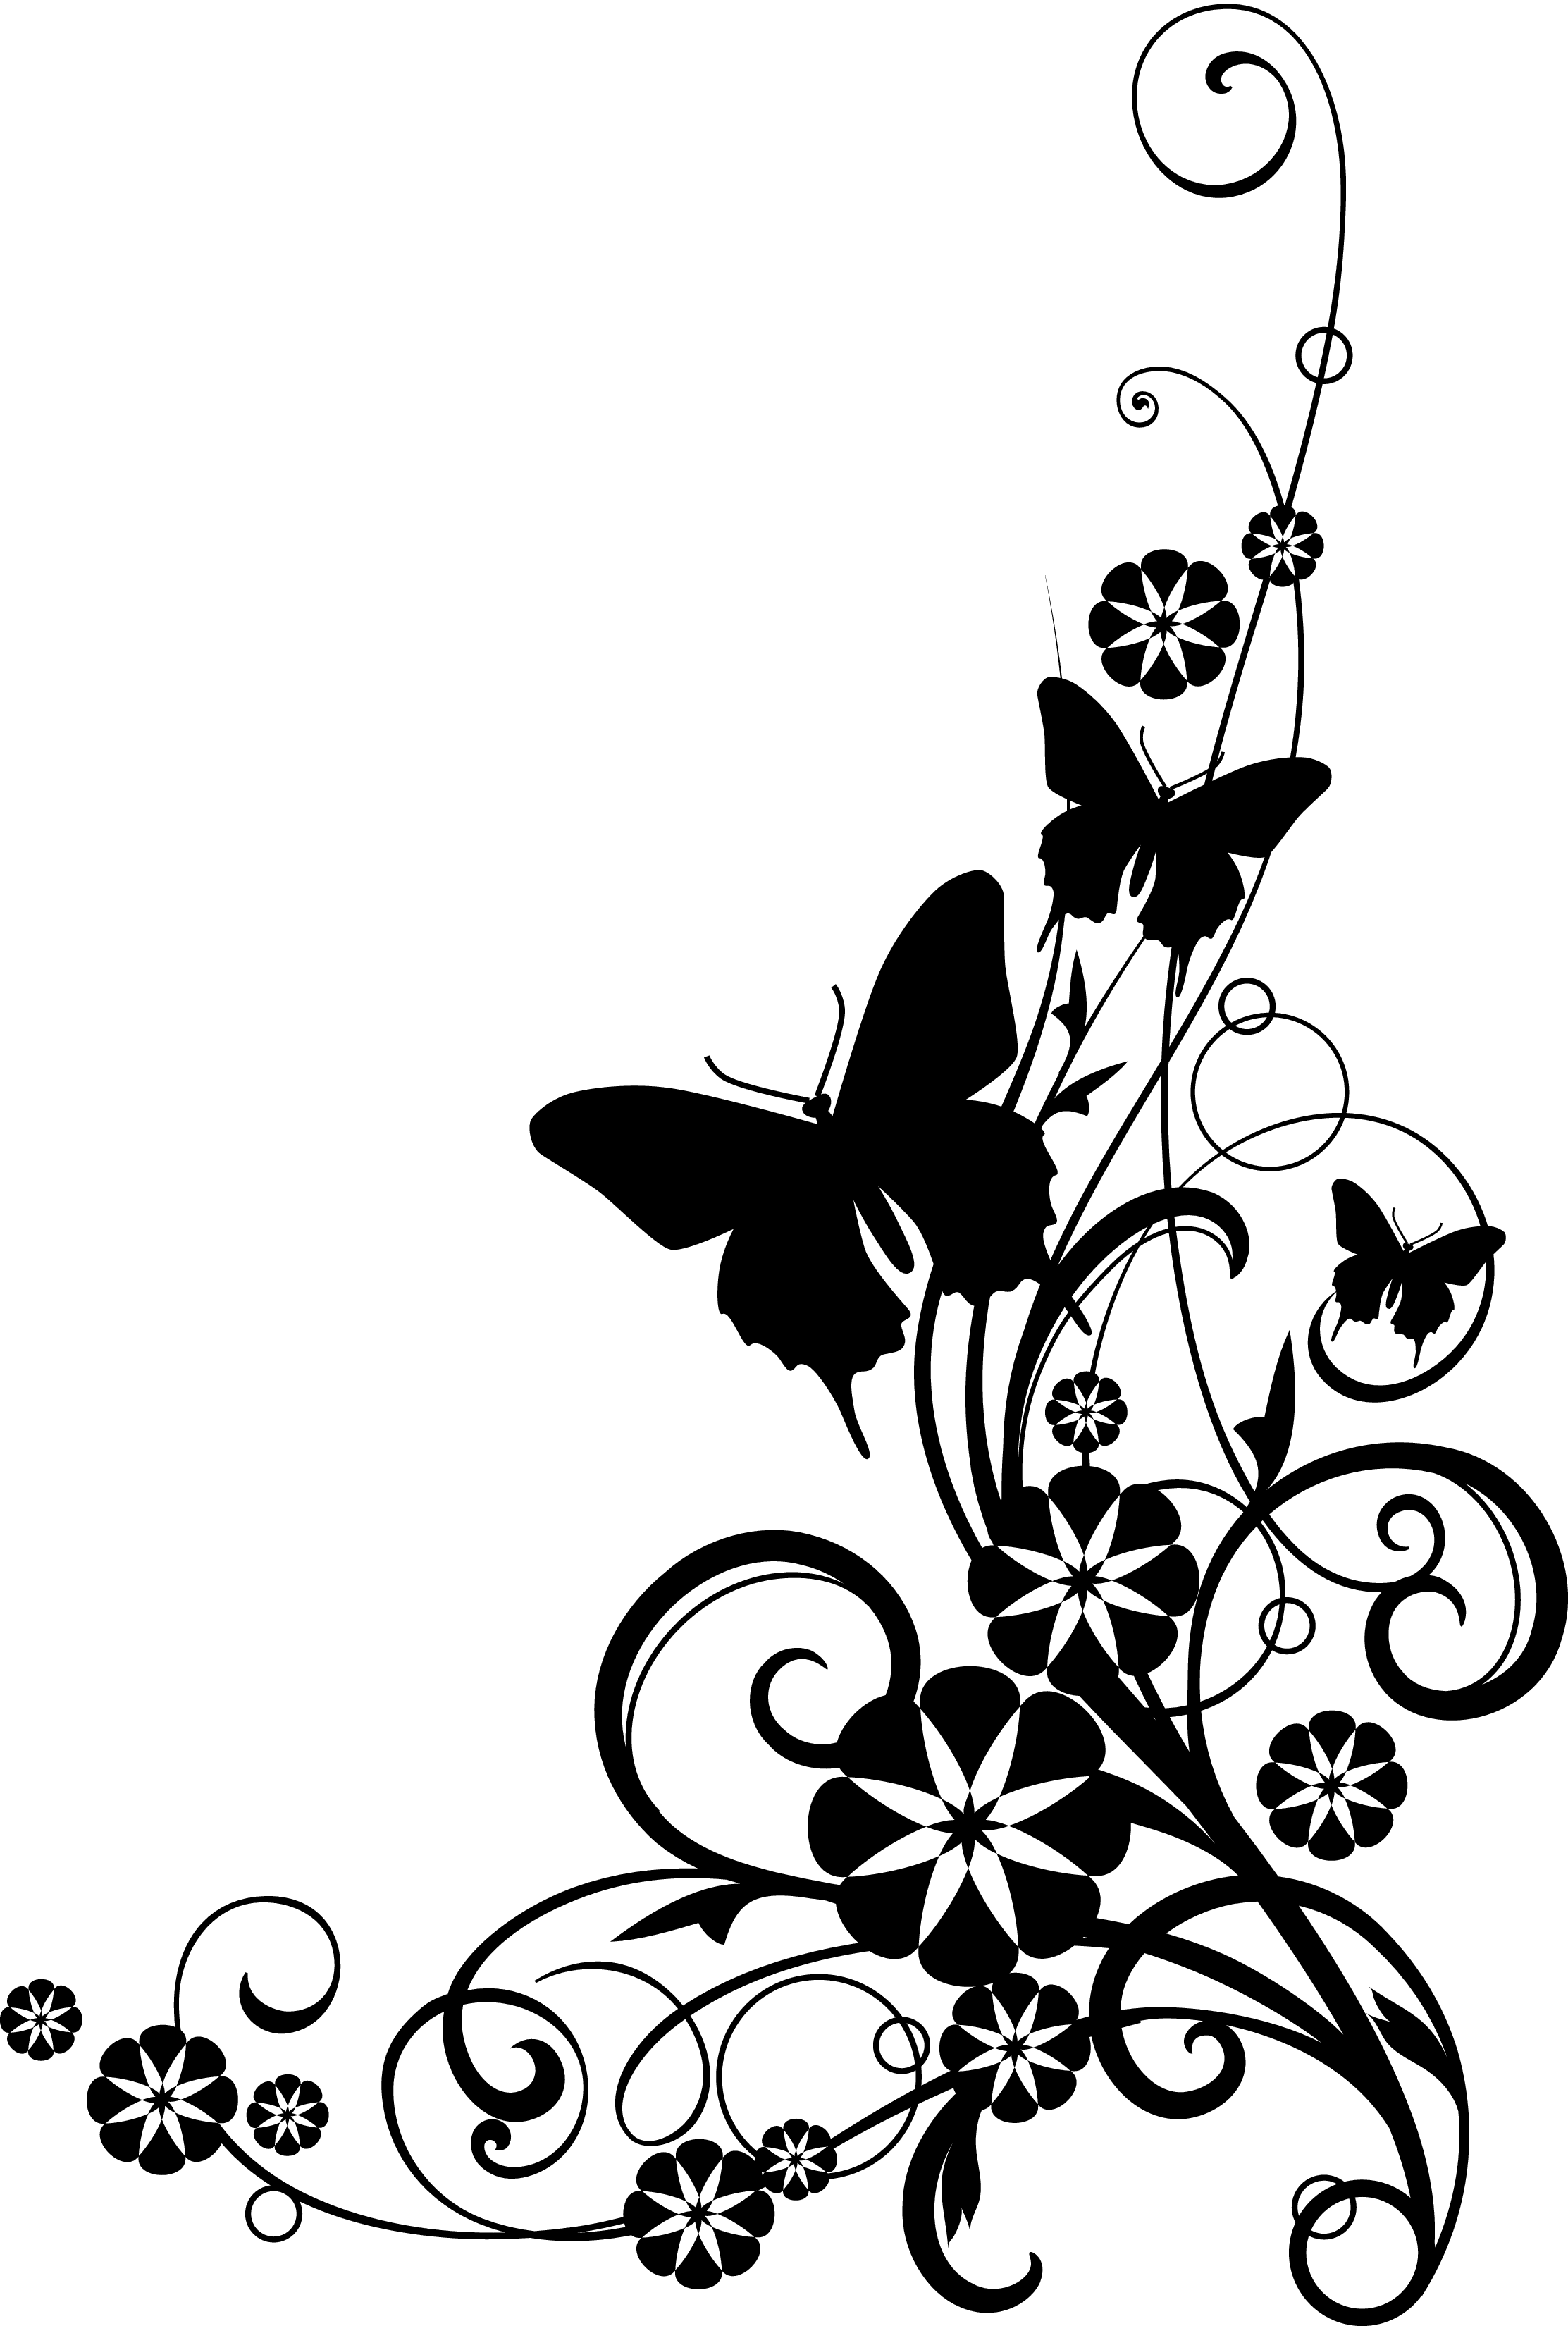 Scrollwork money corner clipart picture transparent library 8c59ec4066e54d3f207a7d2aa92e8274_vine-clipart-black-and-white ... picture transparent library